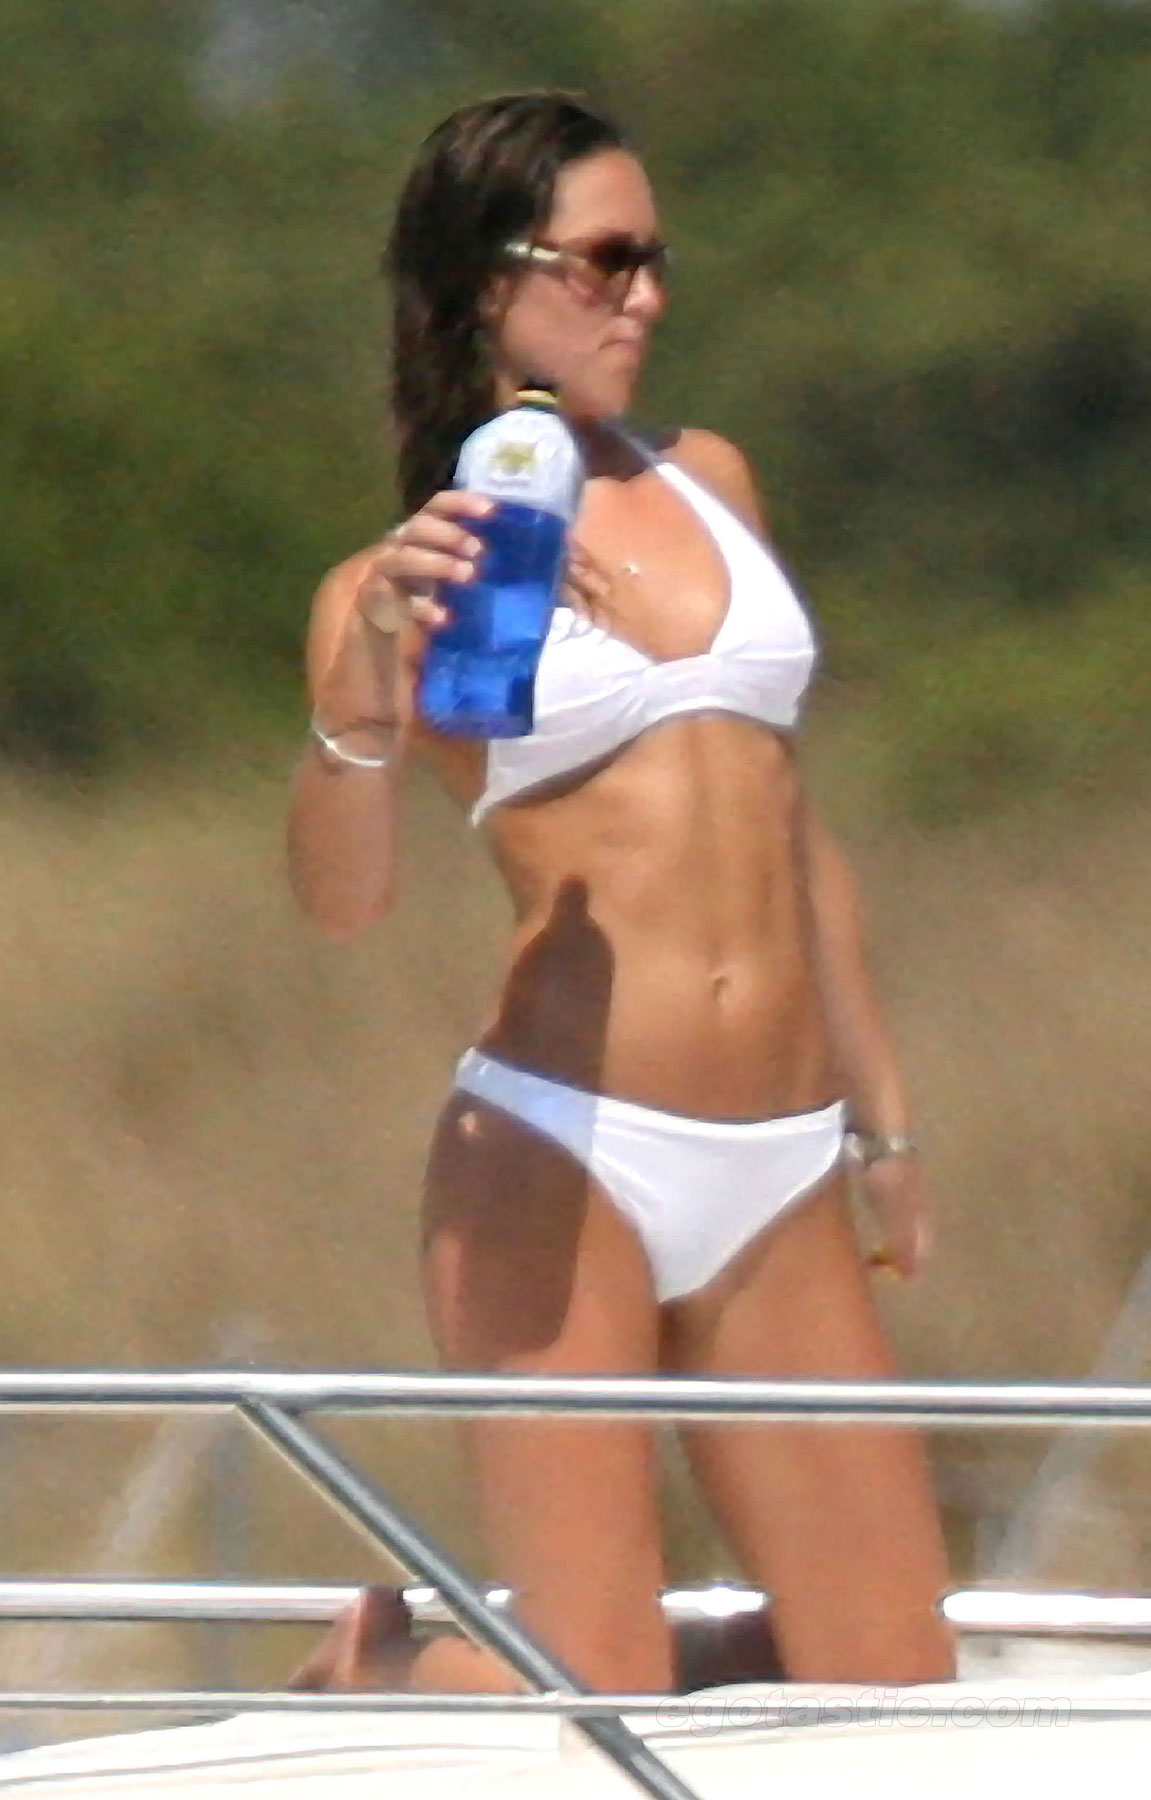 kate middleton bikini 0 Pregnant Kate Middleton shows off her bikini curves on holiday in Mustique: the fury!